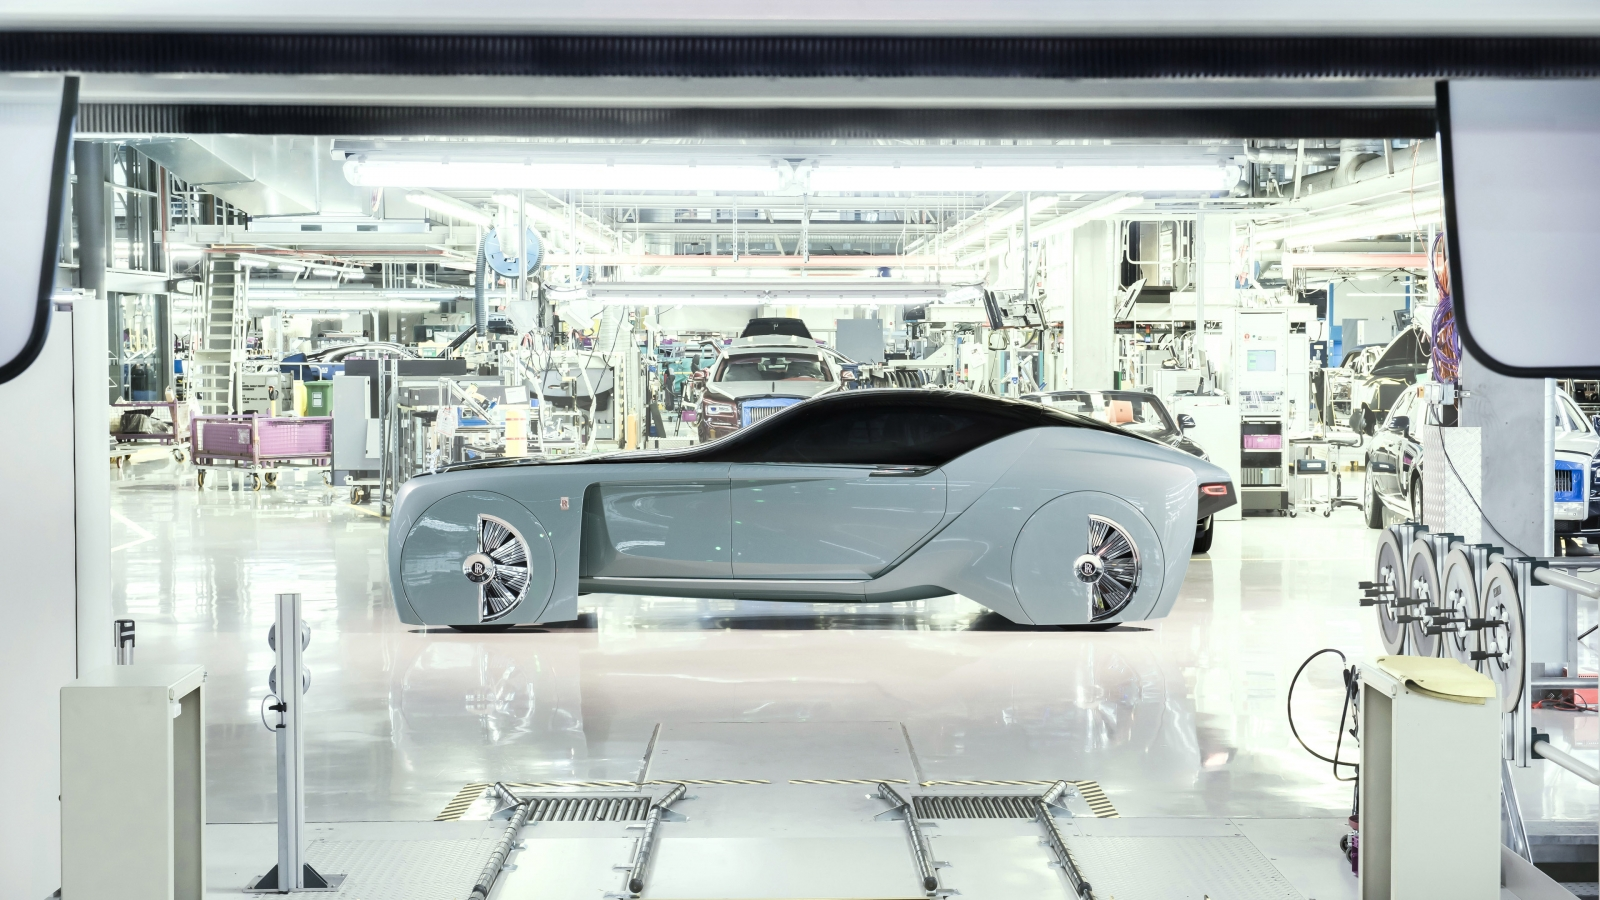 Rolls-Royce Vision Next 100 Concept 2016 - Photo 06 - Taille: 1600x900